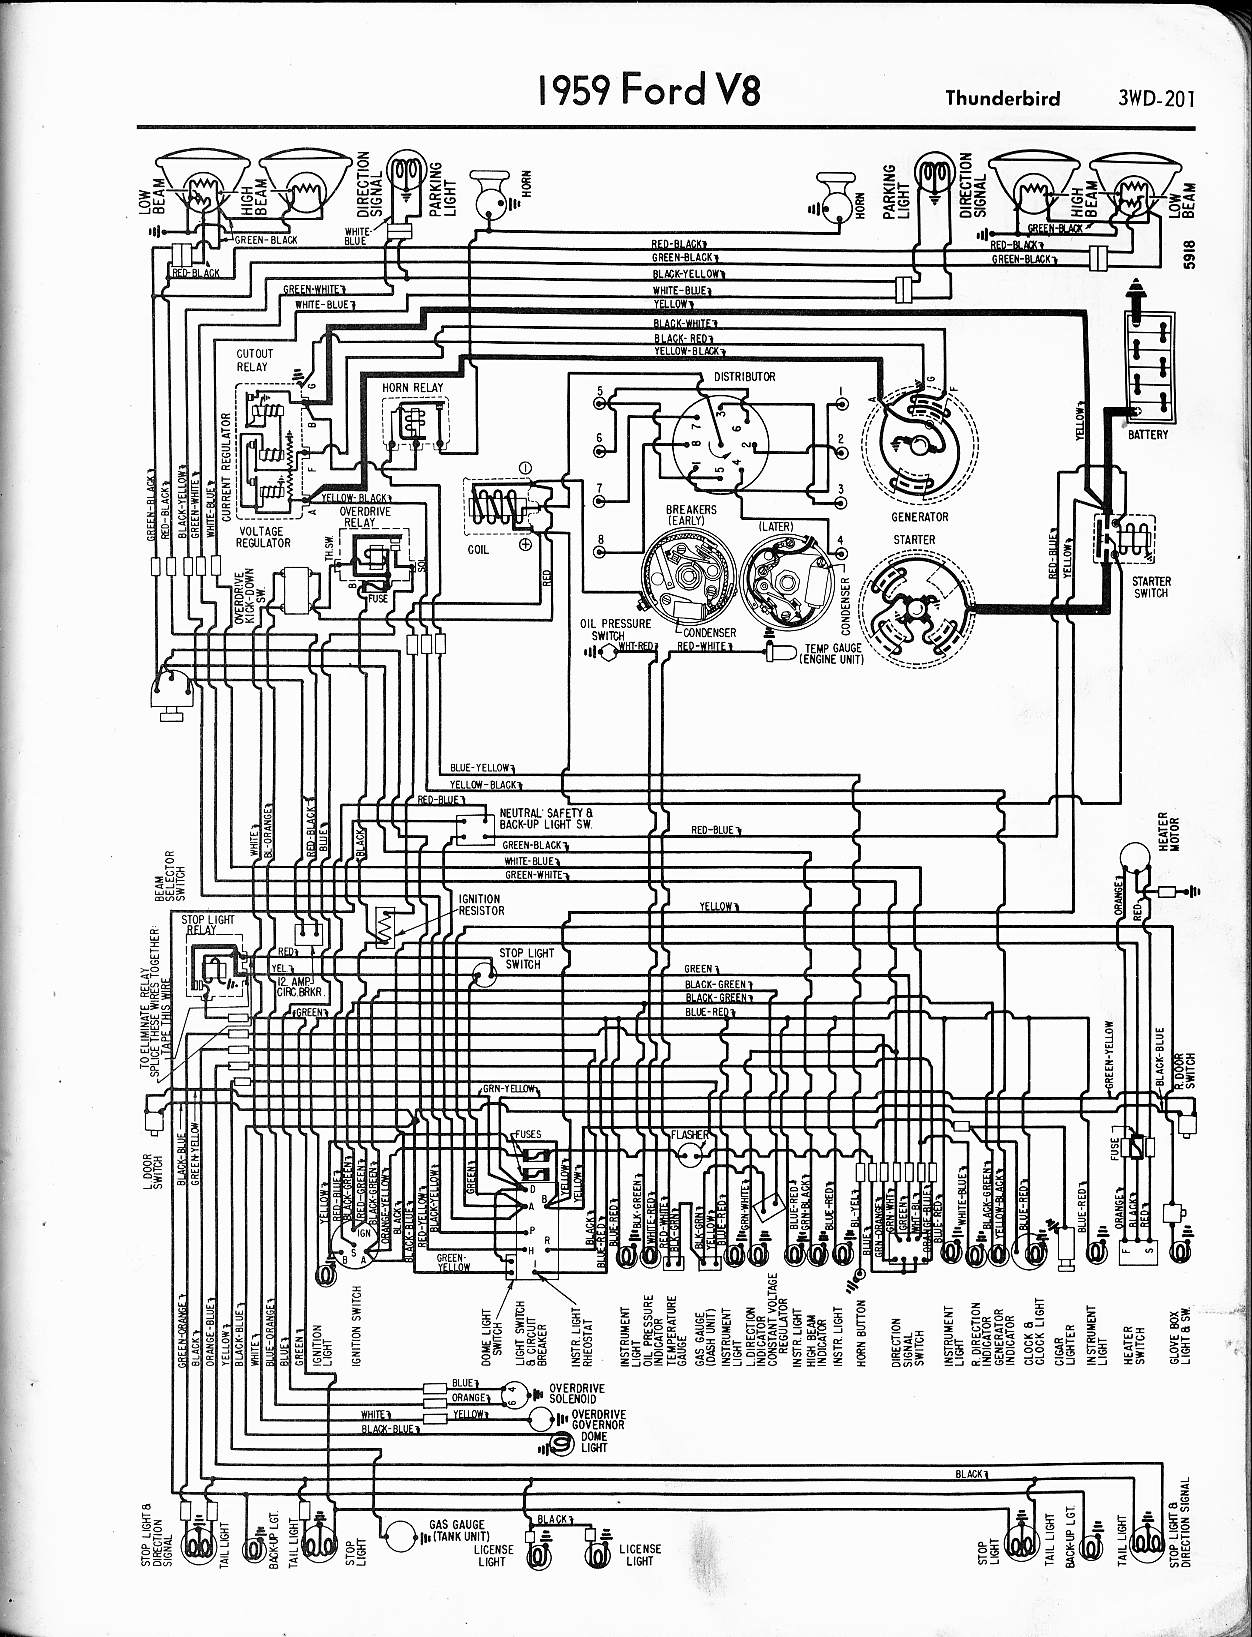 MWire5765 201 57 65 ford wiring diagrams 1972 ford f100 fuse box diagram at n-0.co